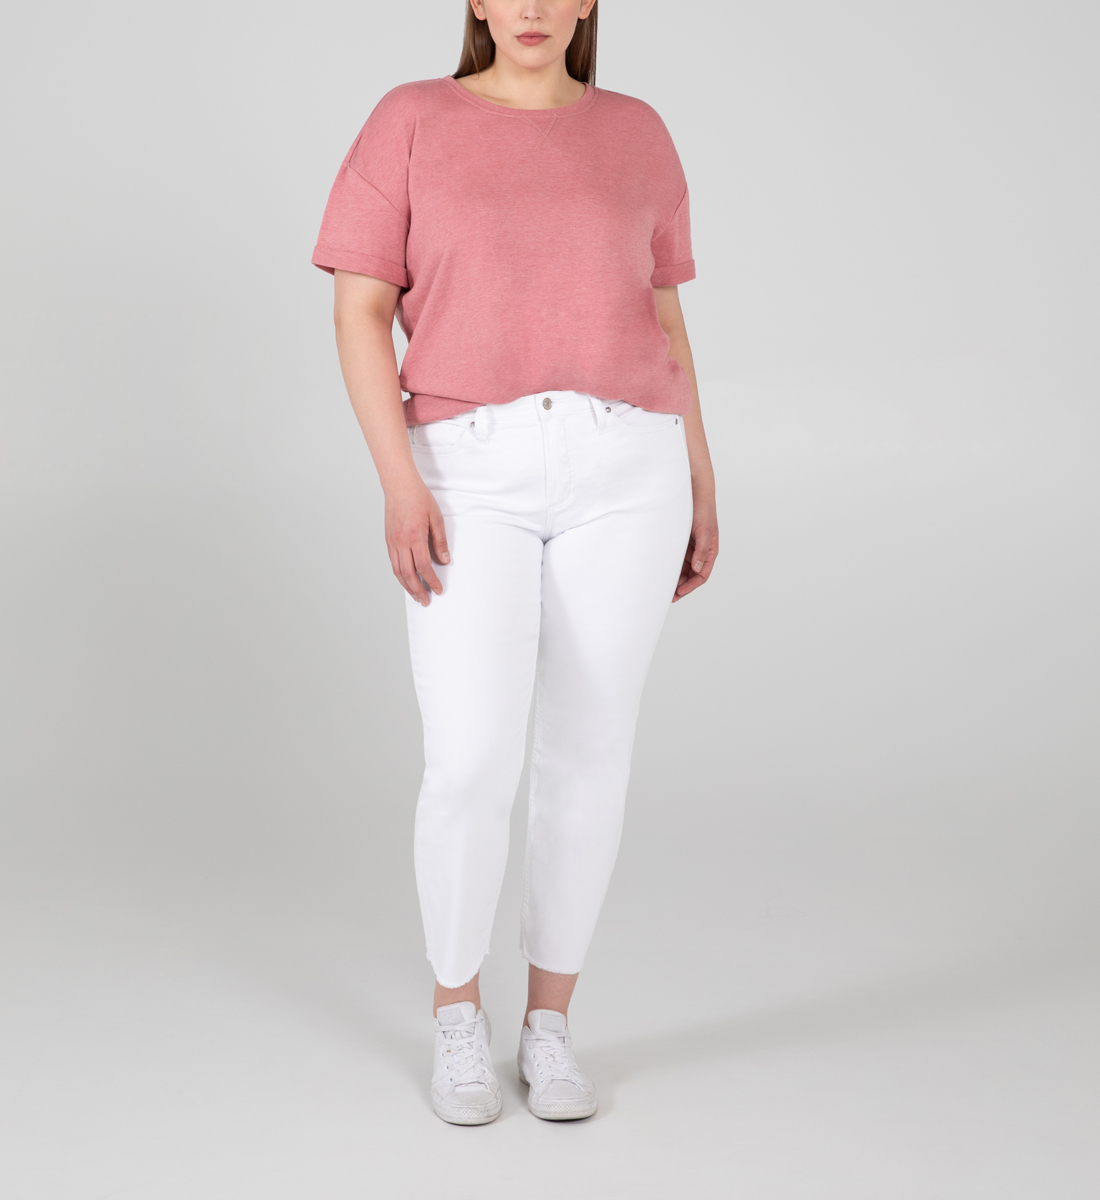 Silver Jeans Most Wanted Mid Rise Straight Crop Jeans Plus Size